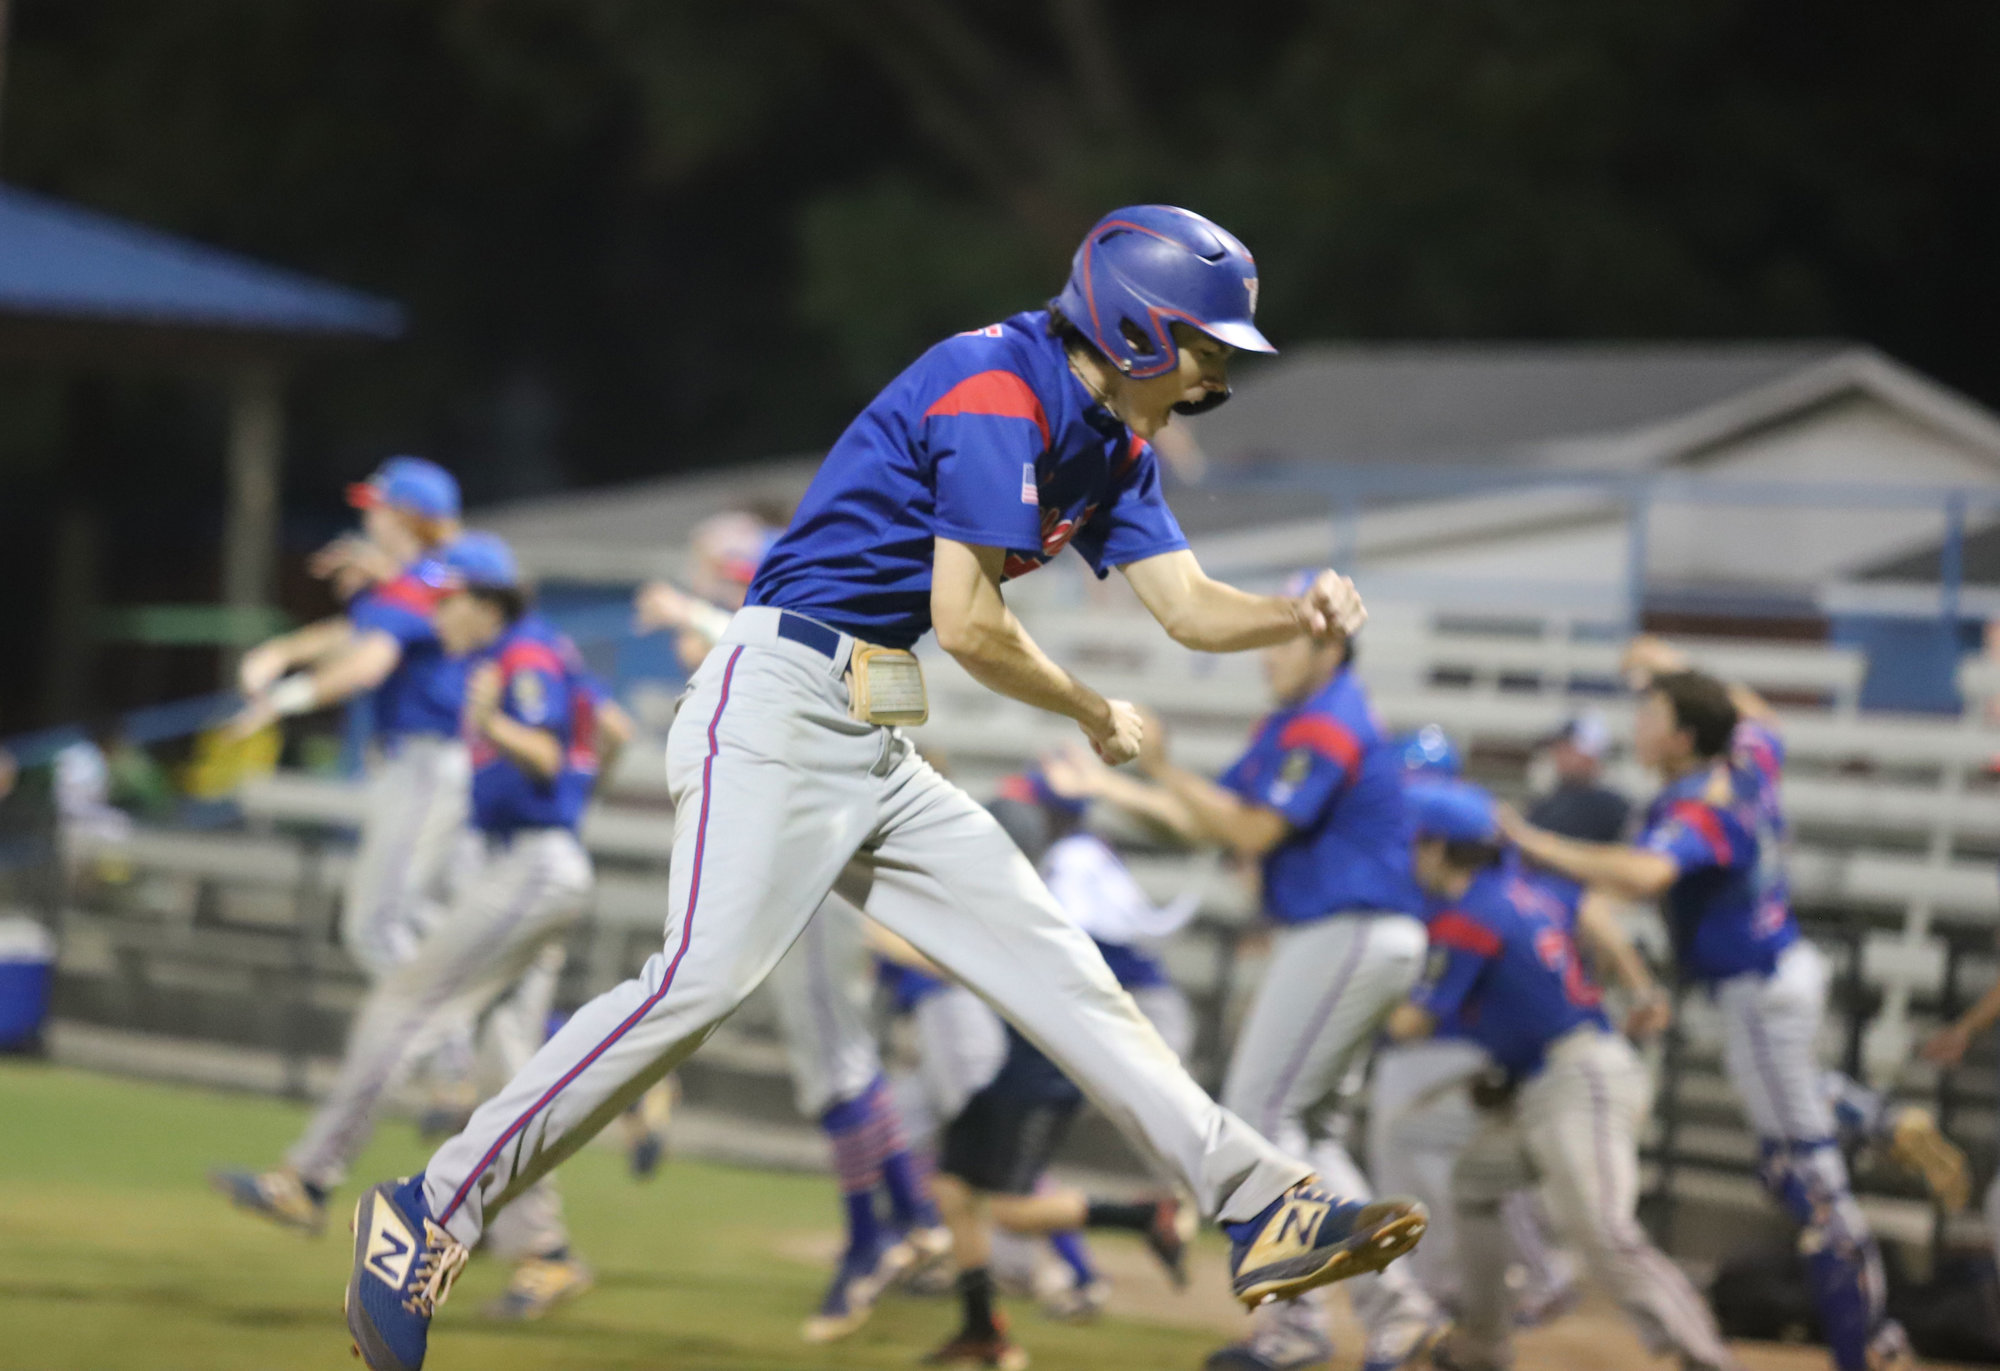 Jackson Hoshour crosses the plate with the winning run in Sumter's 4-3 victory over Goose Creek Post 166.